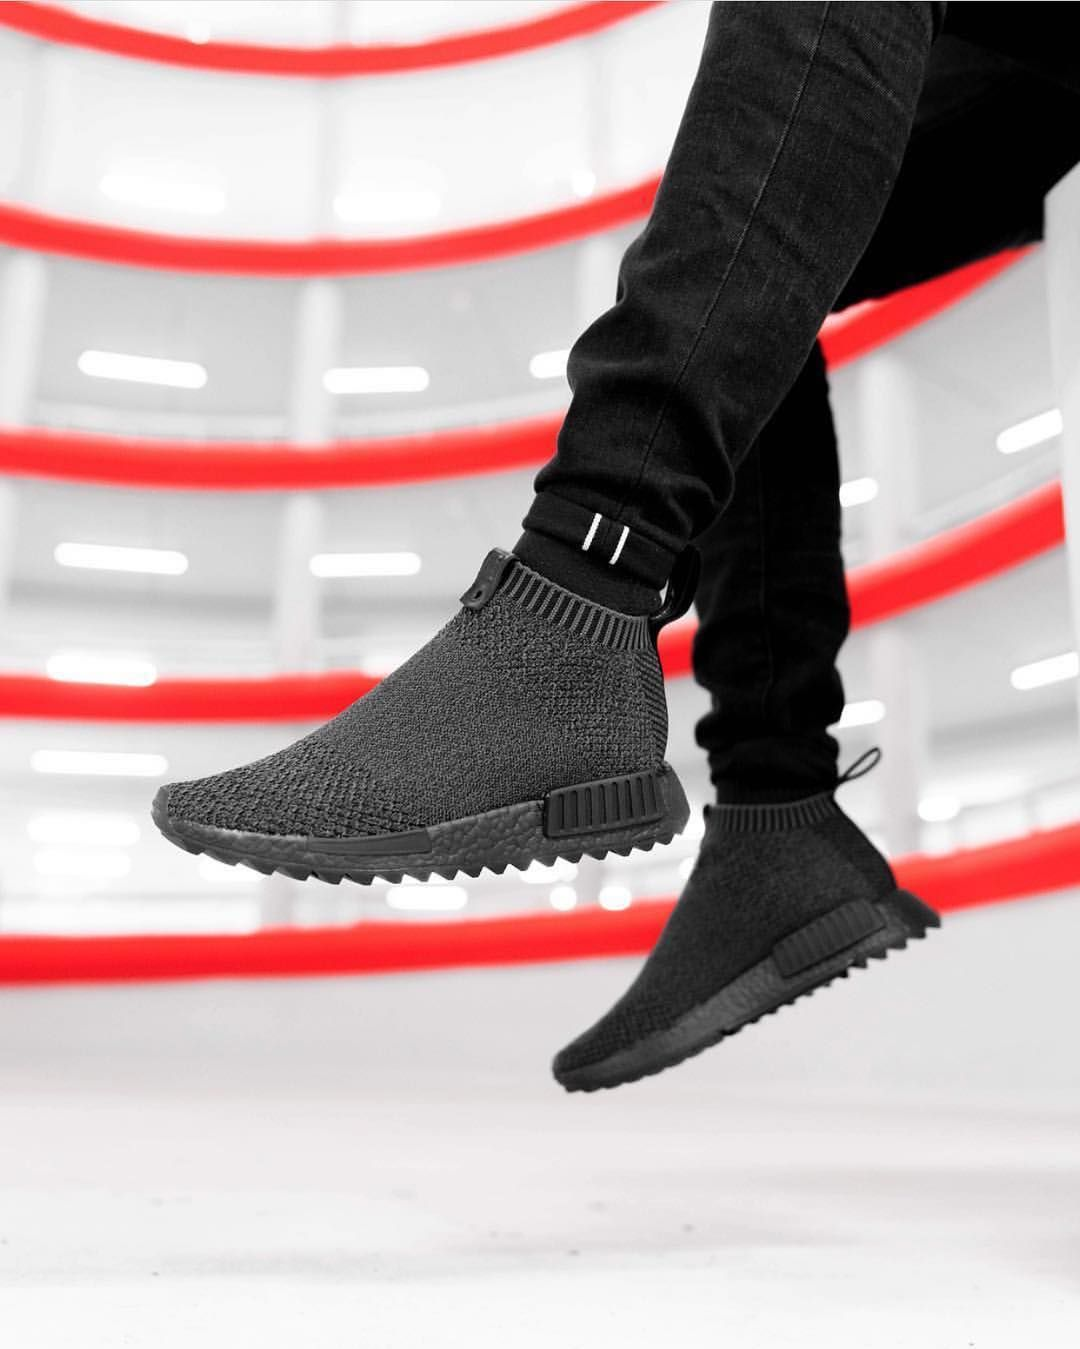 save off fe297 c2e9d Release Date   September 23, 2017 Adidas x The Good Will Out NMD CS1 «  Shinobi » Primeknit Credit   Footshop